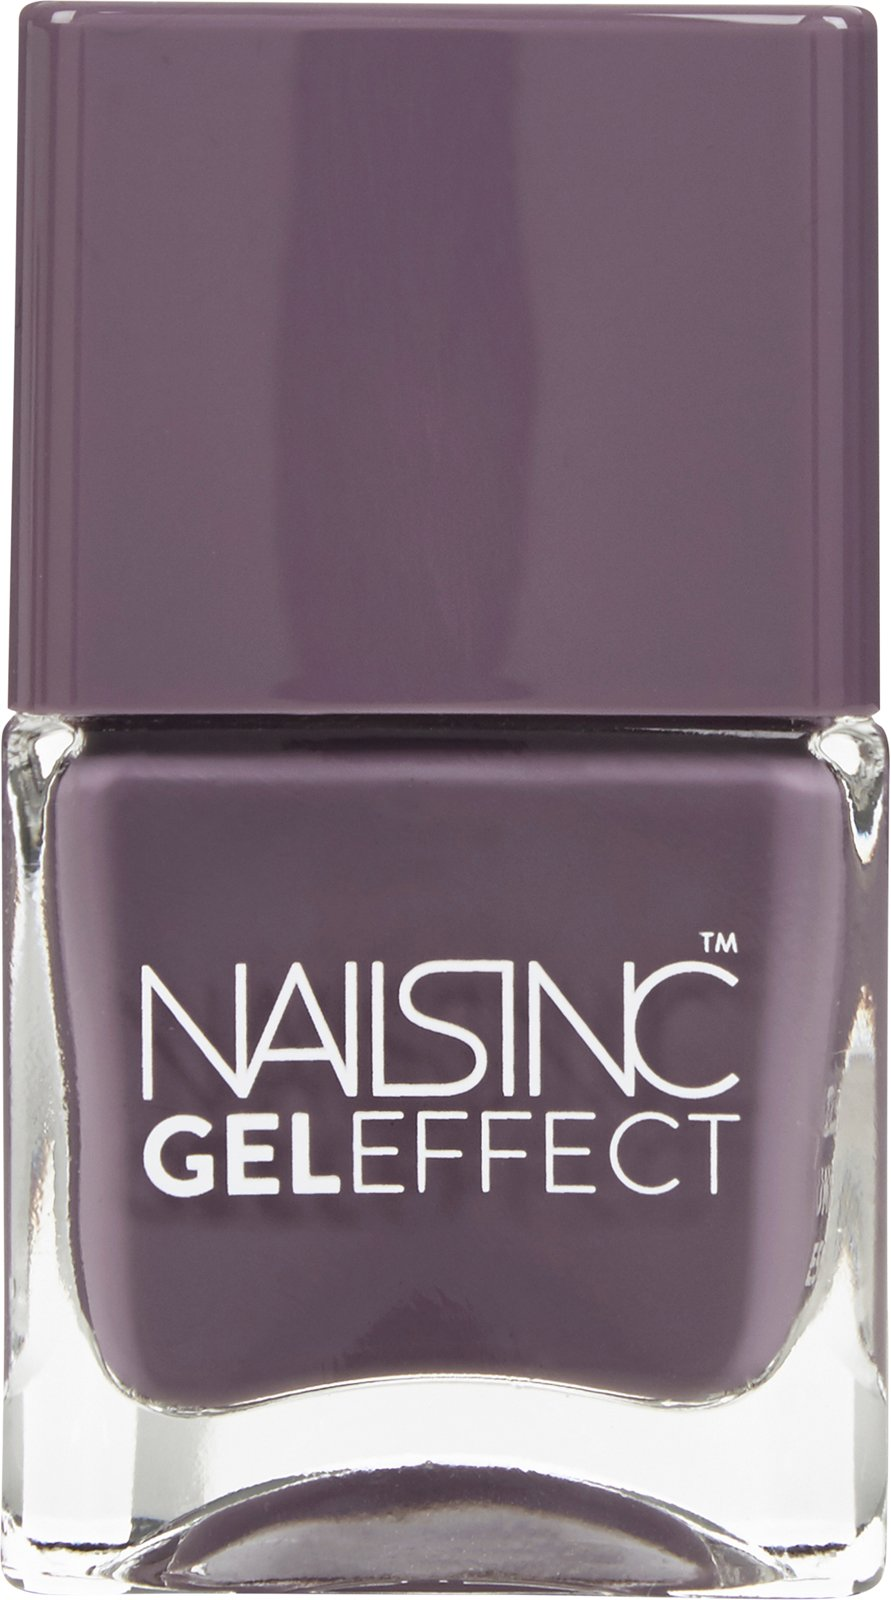 Nails Inc - Gel Effect Nail Lacquer 14 ml - Wetherby Gardens